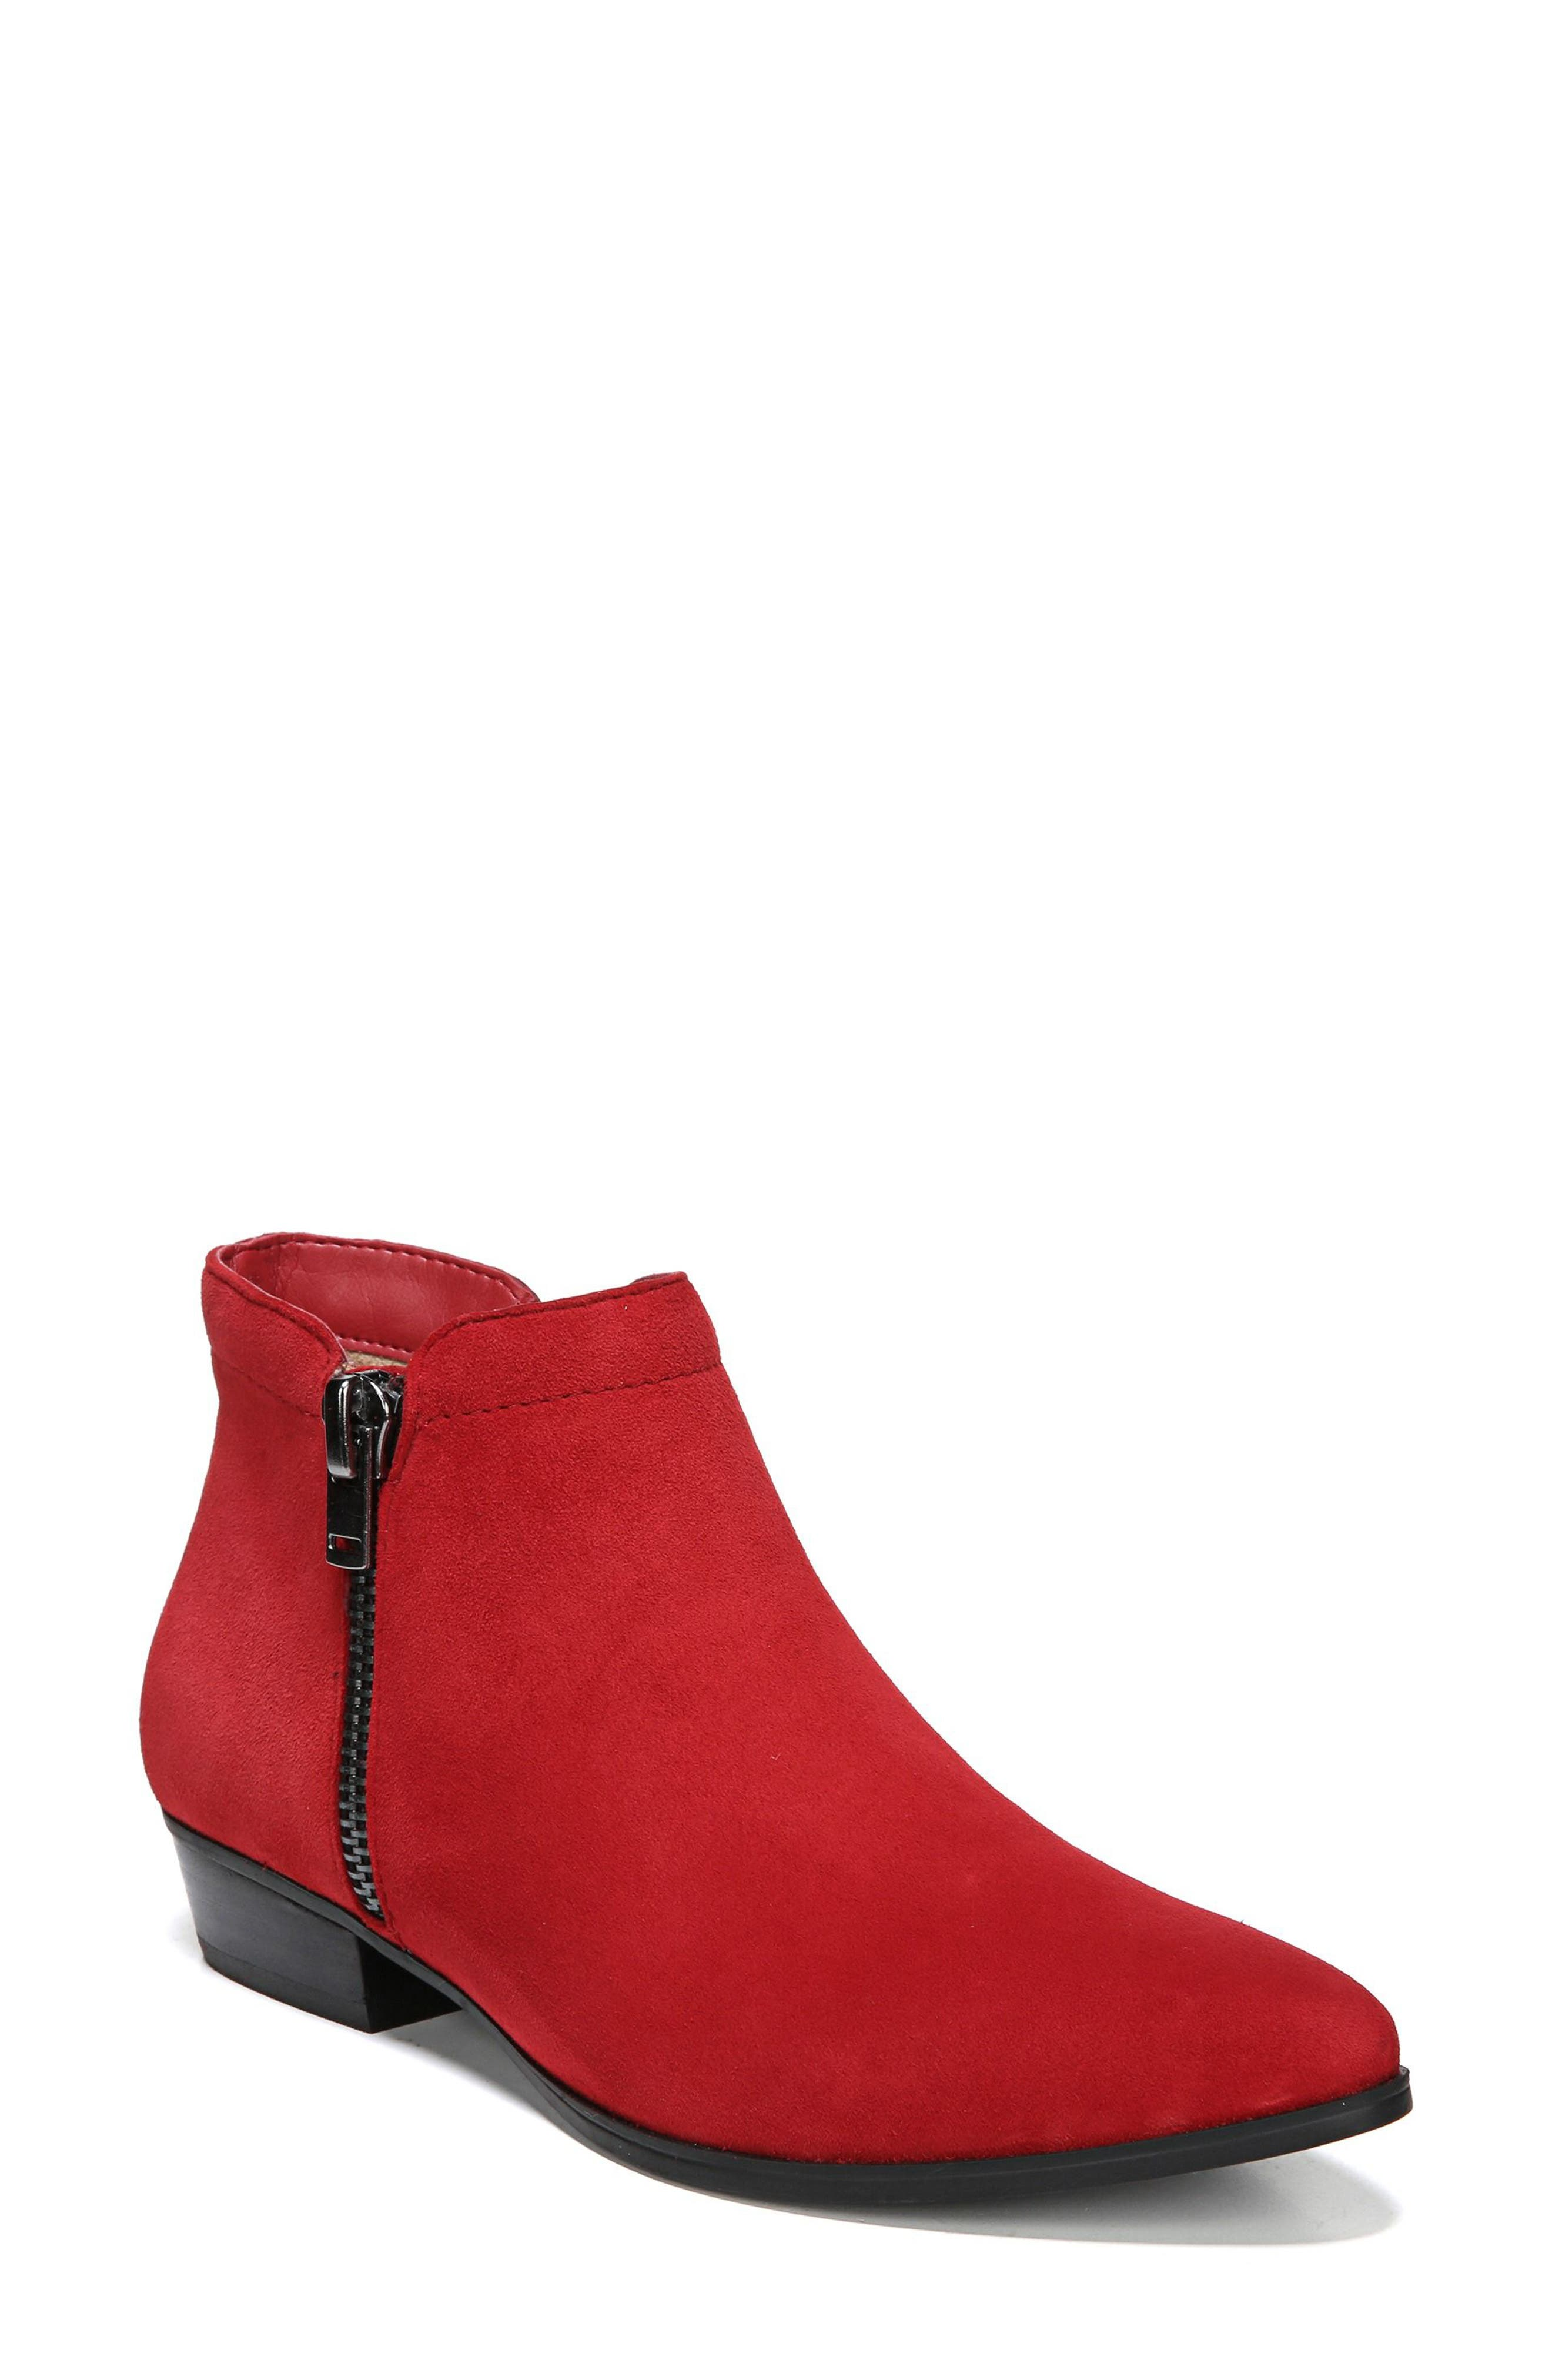 Naturalizer Blair Bootie, Red